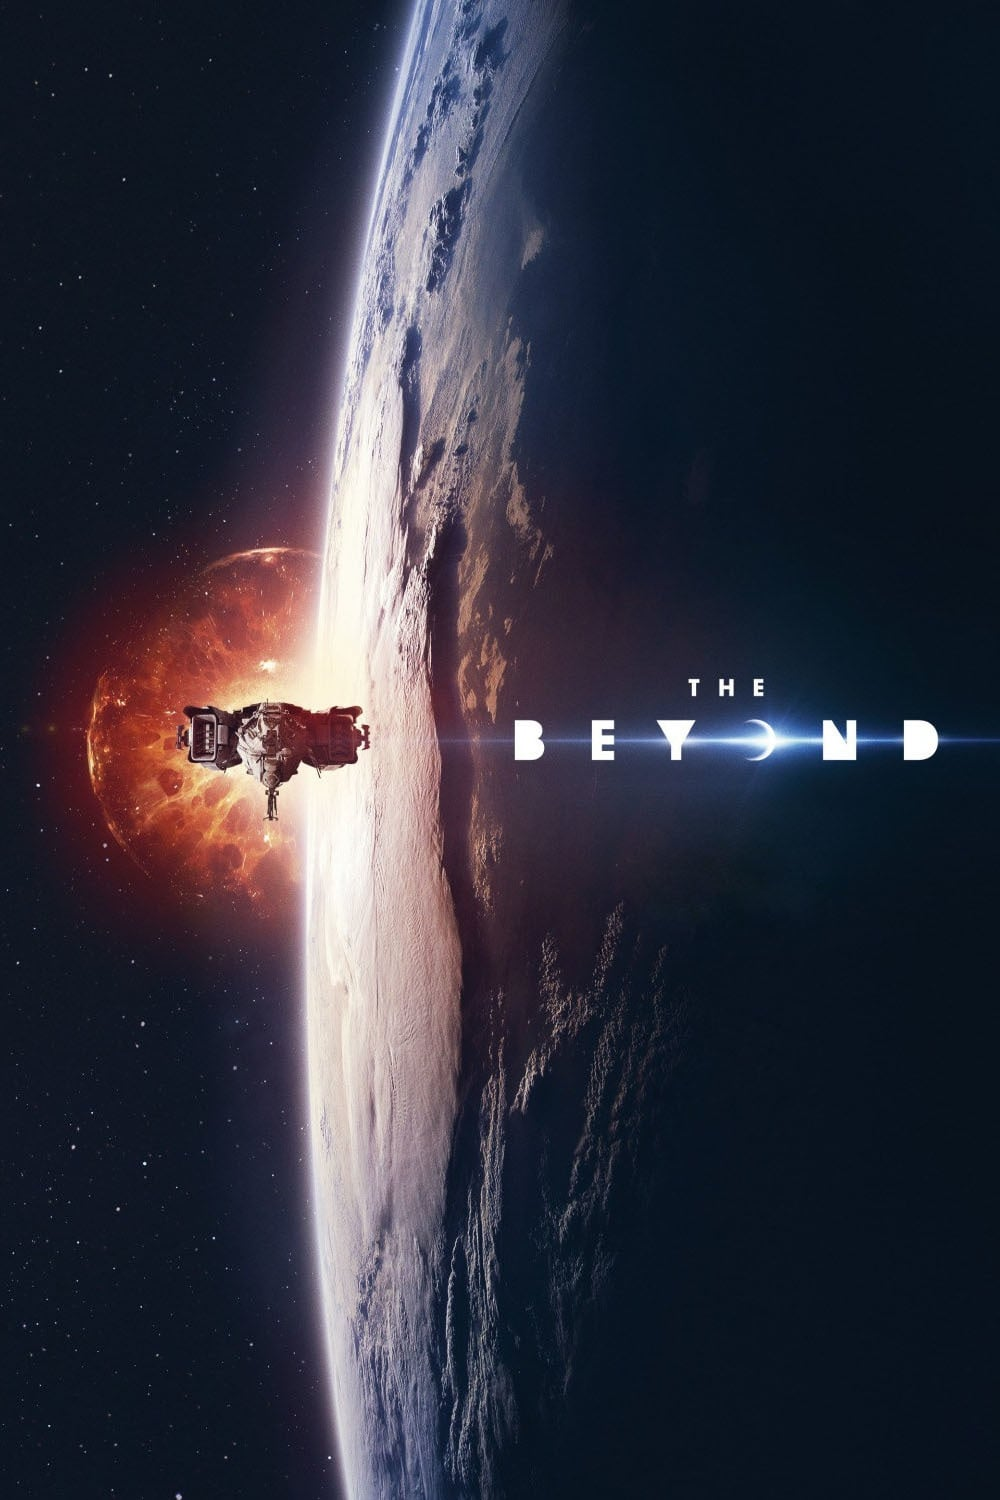 The Beyond (2018) - The Movie